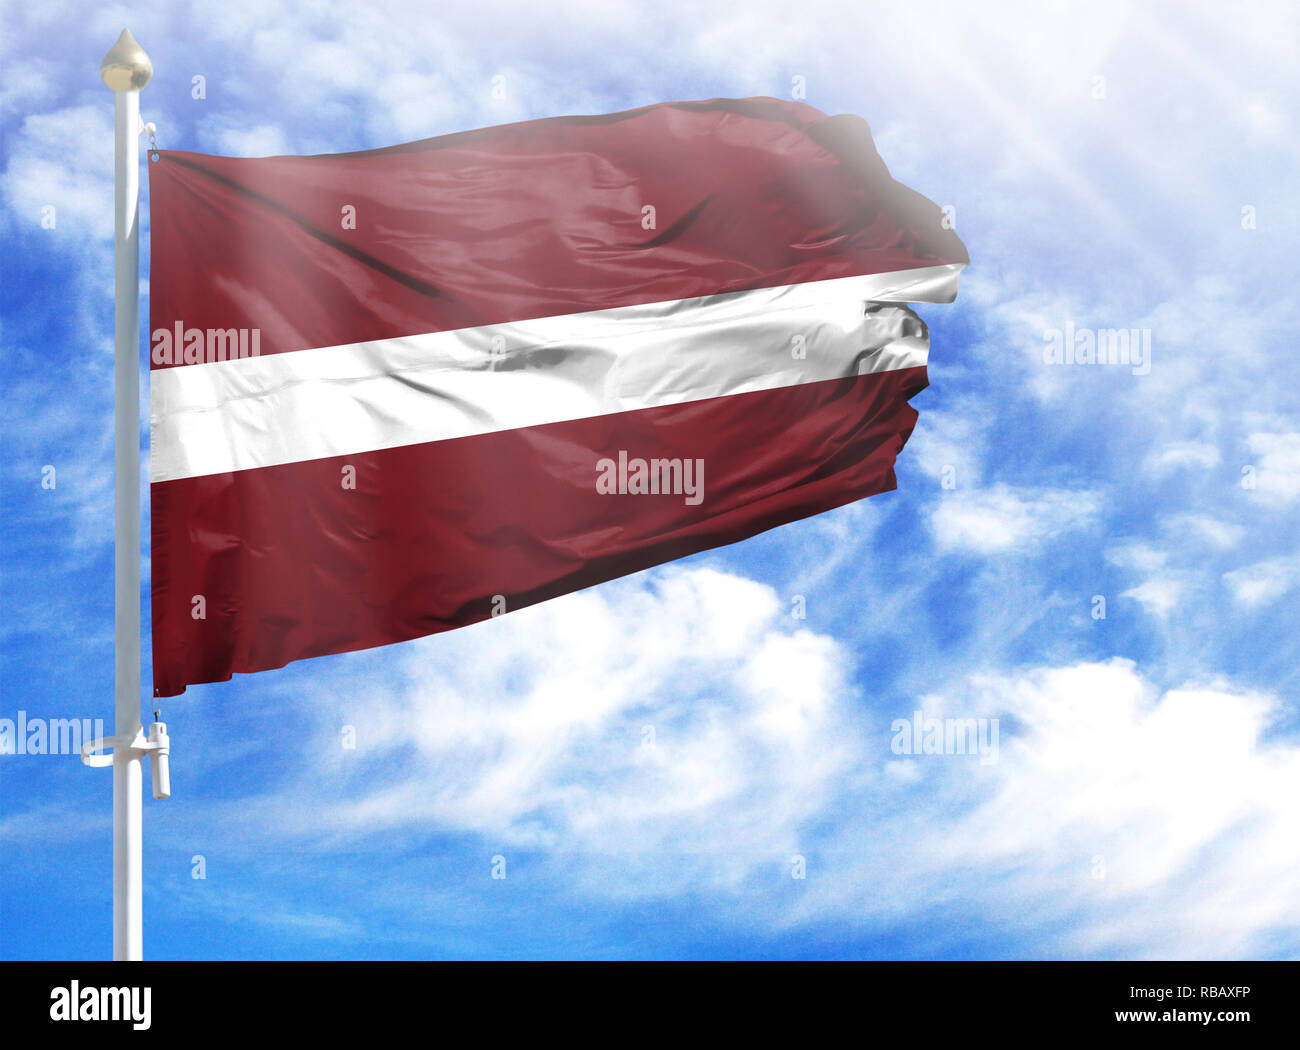 National flag of Latvia on a flagpole in front of blue sky. - Stock Image